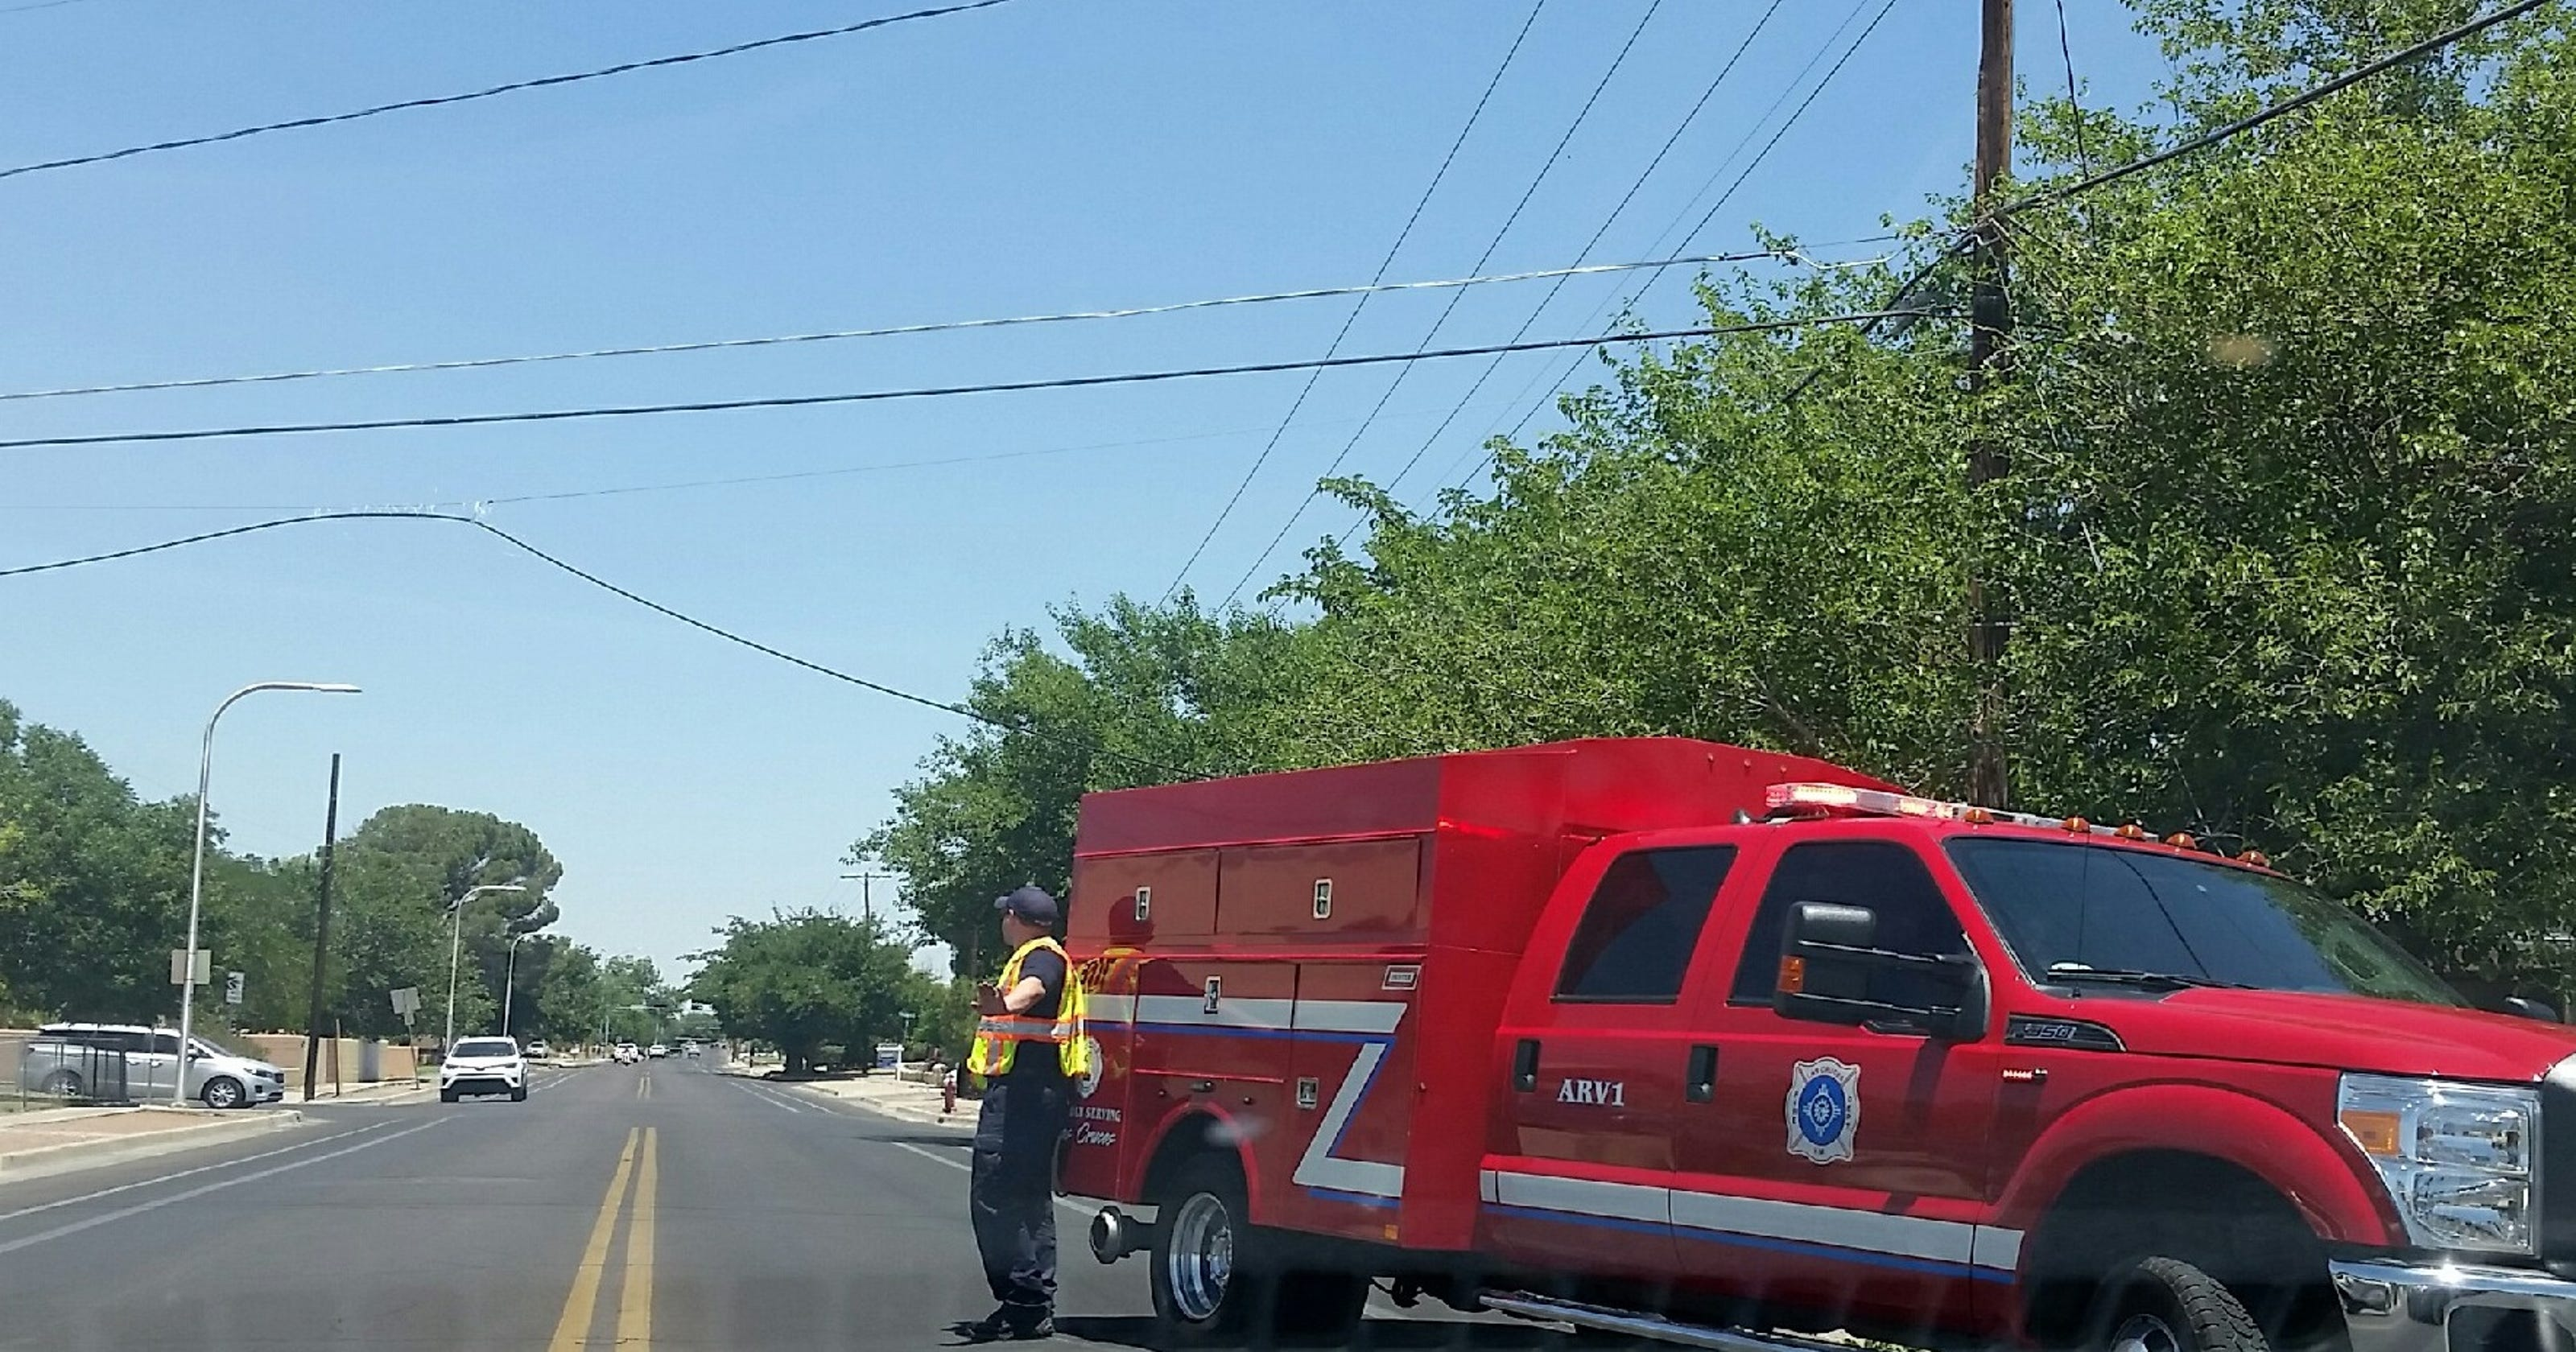 Truck strikes Comcast cable in Las Cruces, sparking small El Paso